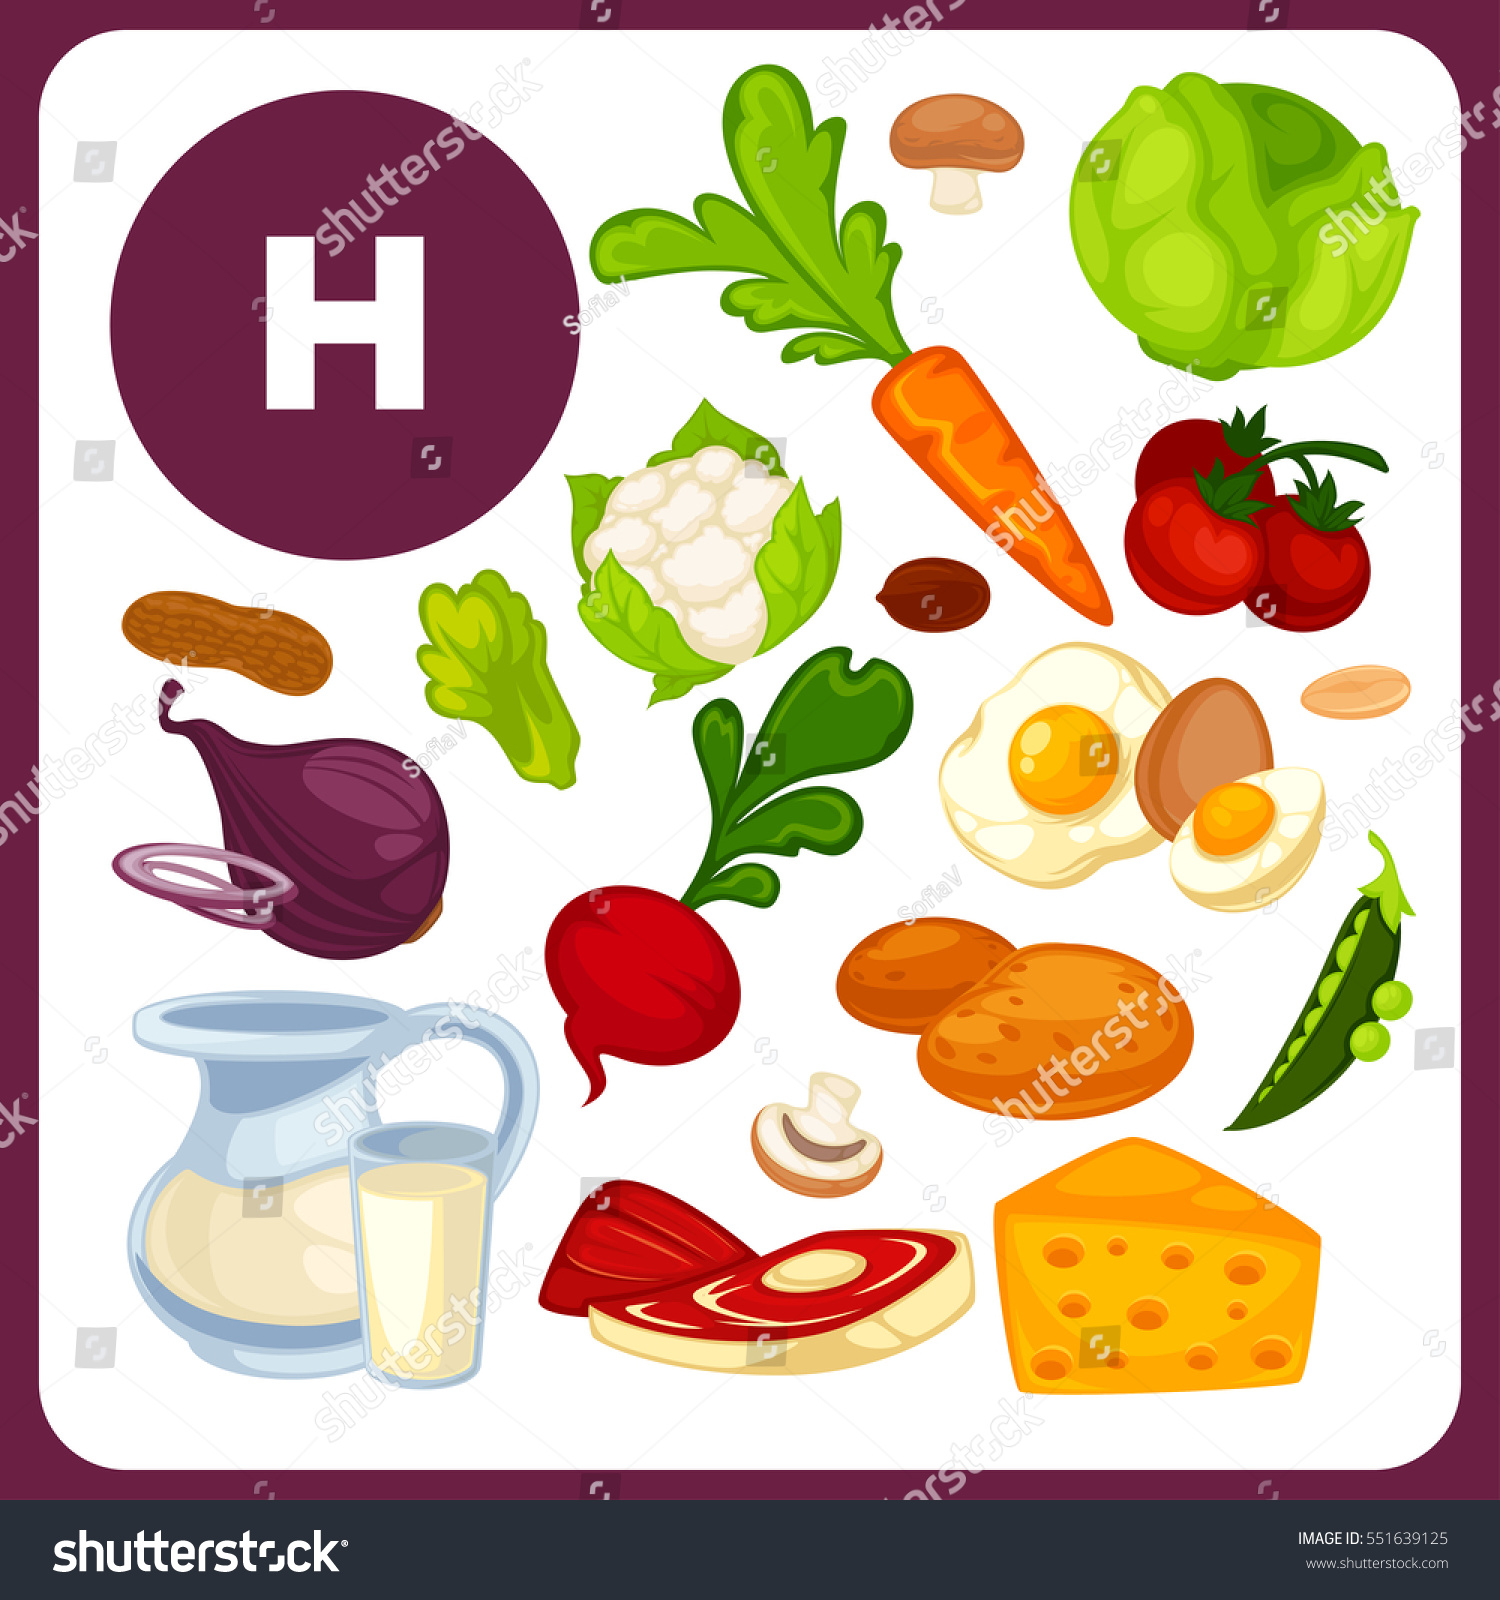 Poster cutlets from cabbage, beets and potatoes